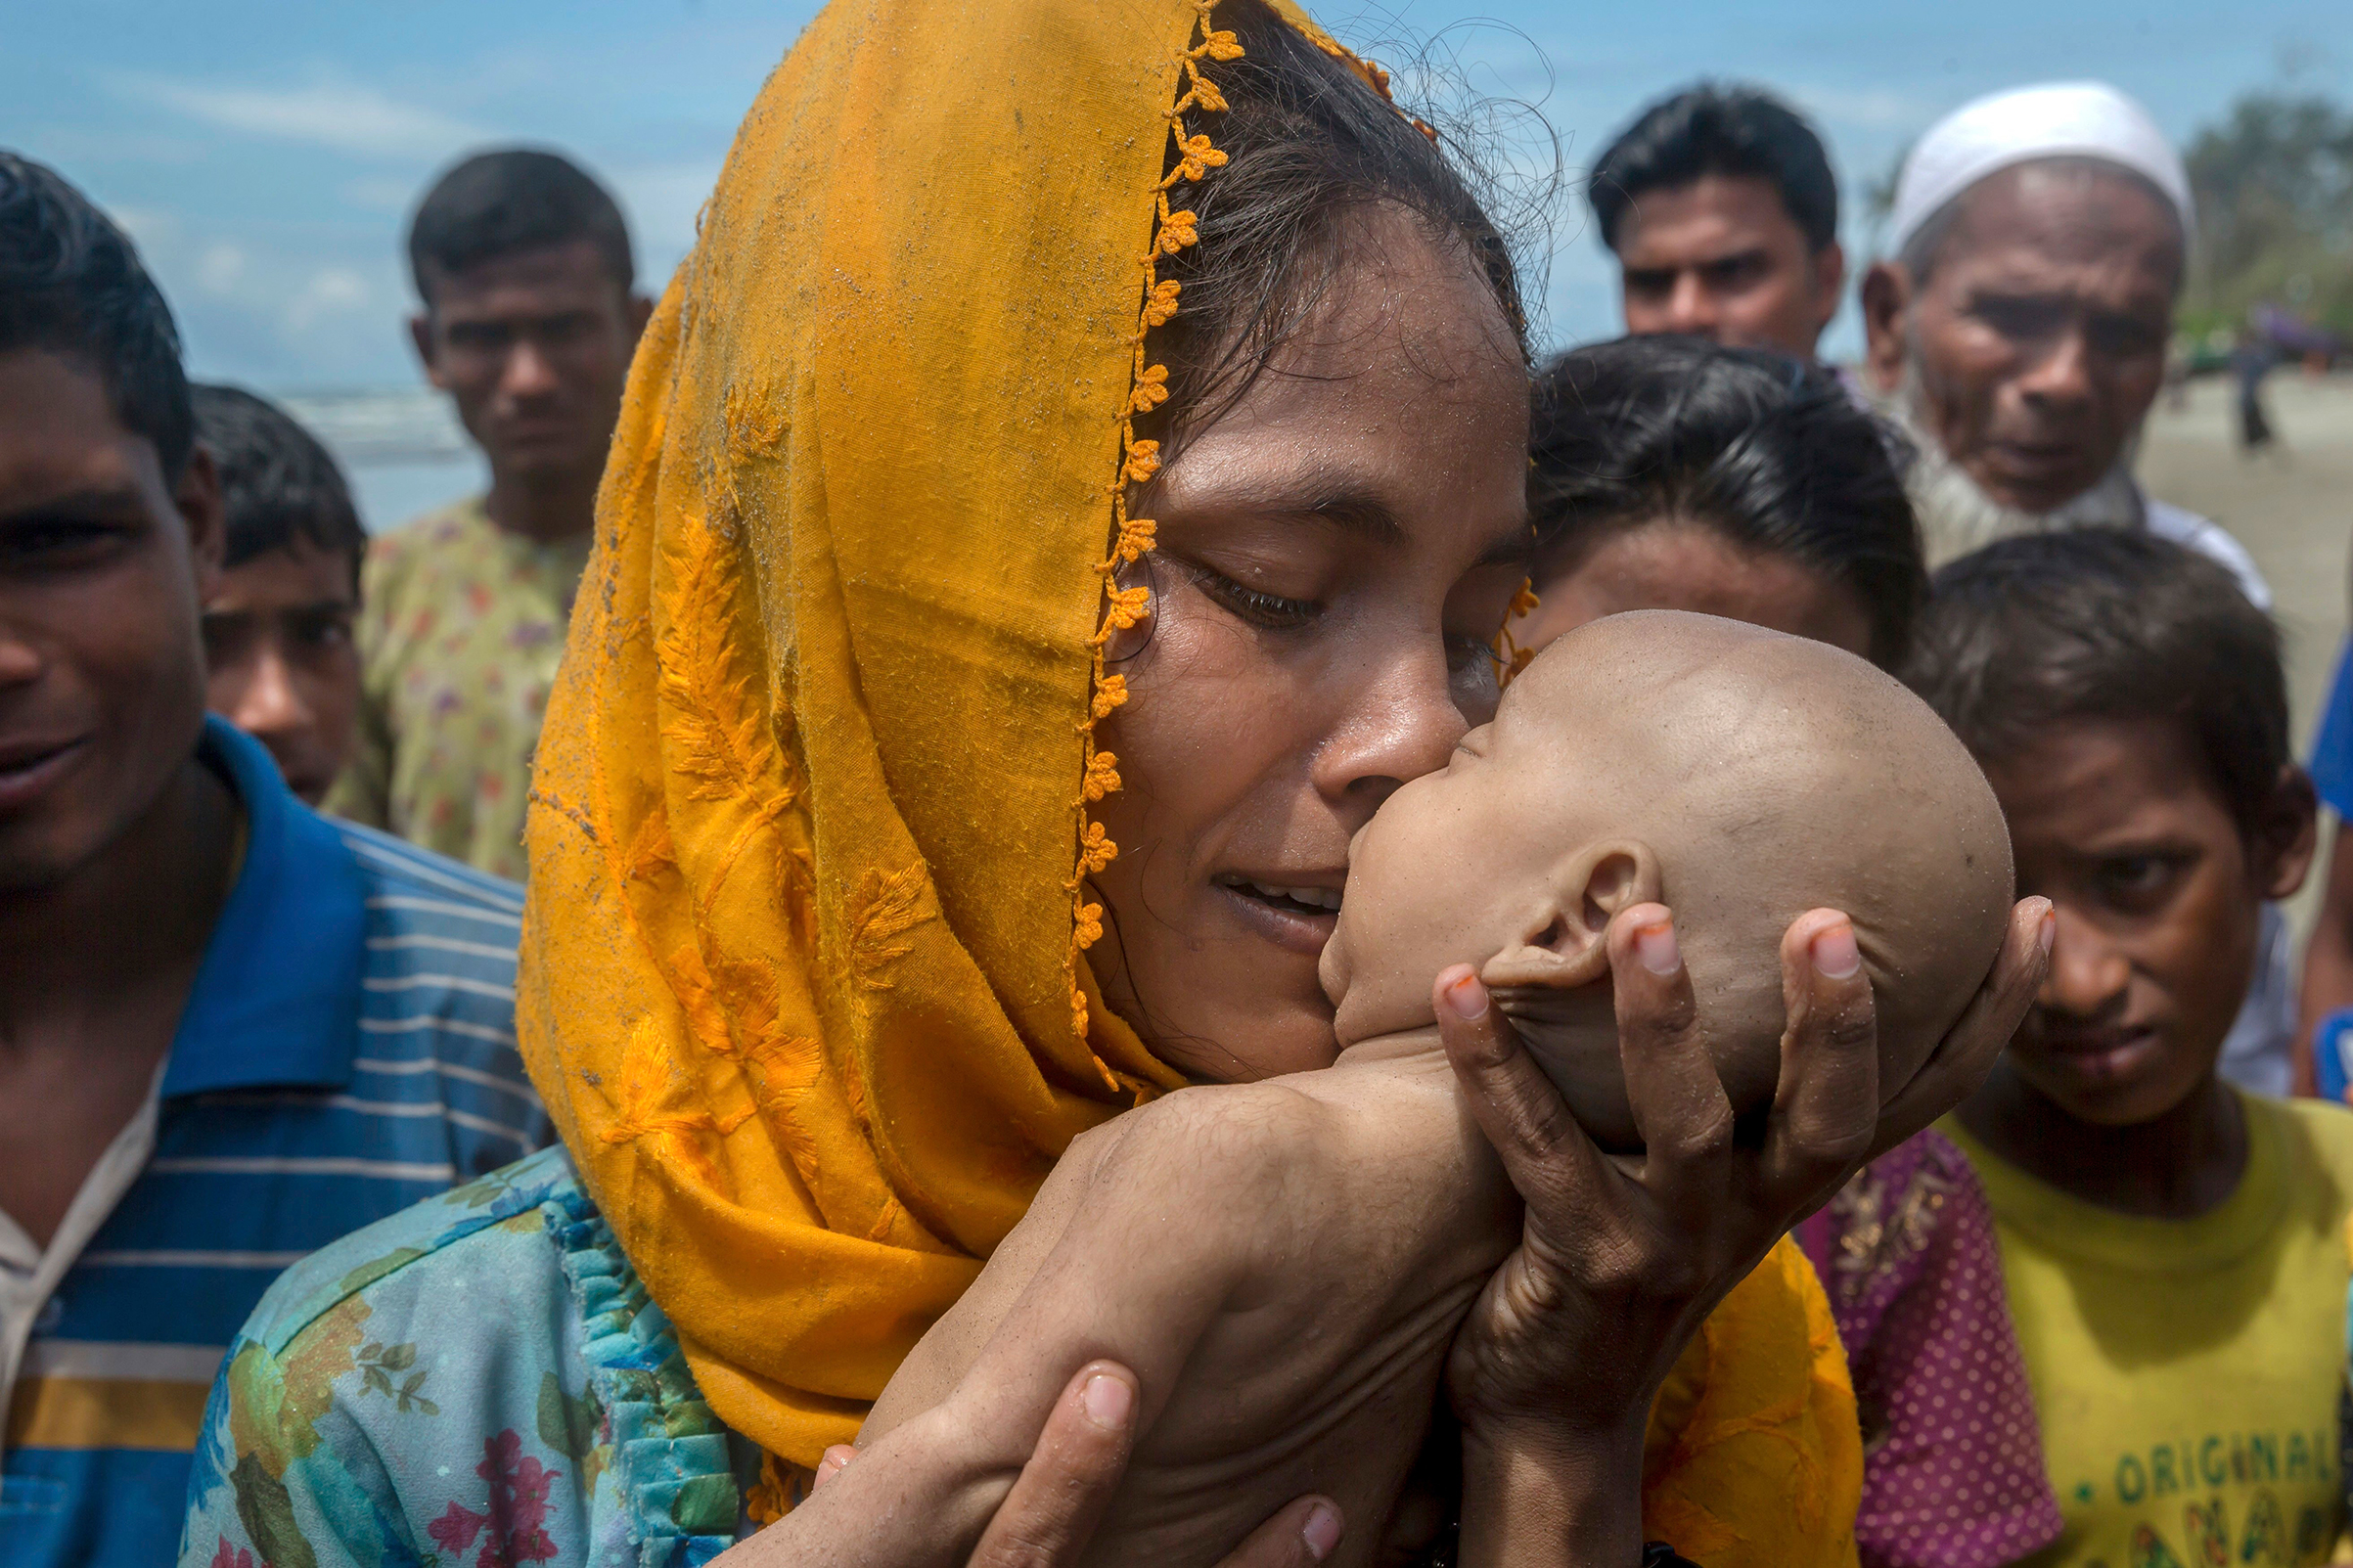 A Rohingya woman grieves for her infant son, who died when their boat capsized off Bangladesh on Sept. 14.